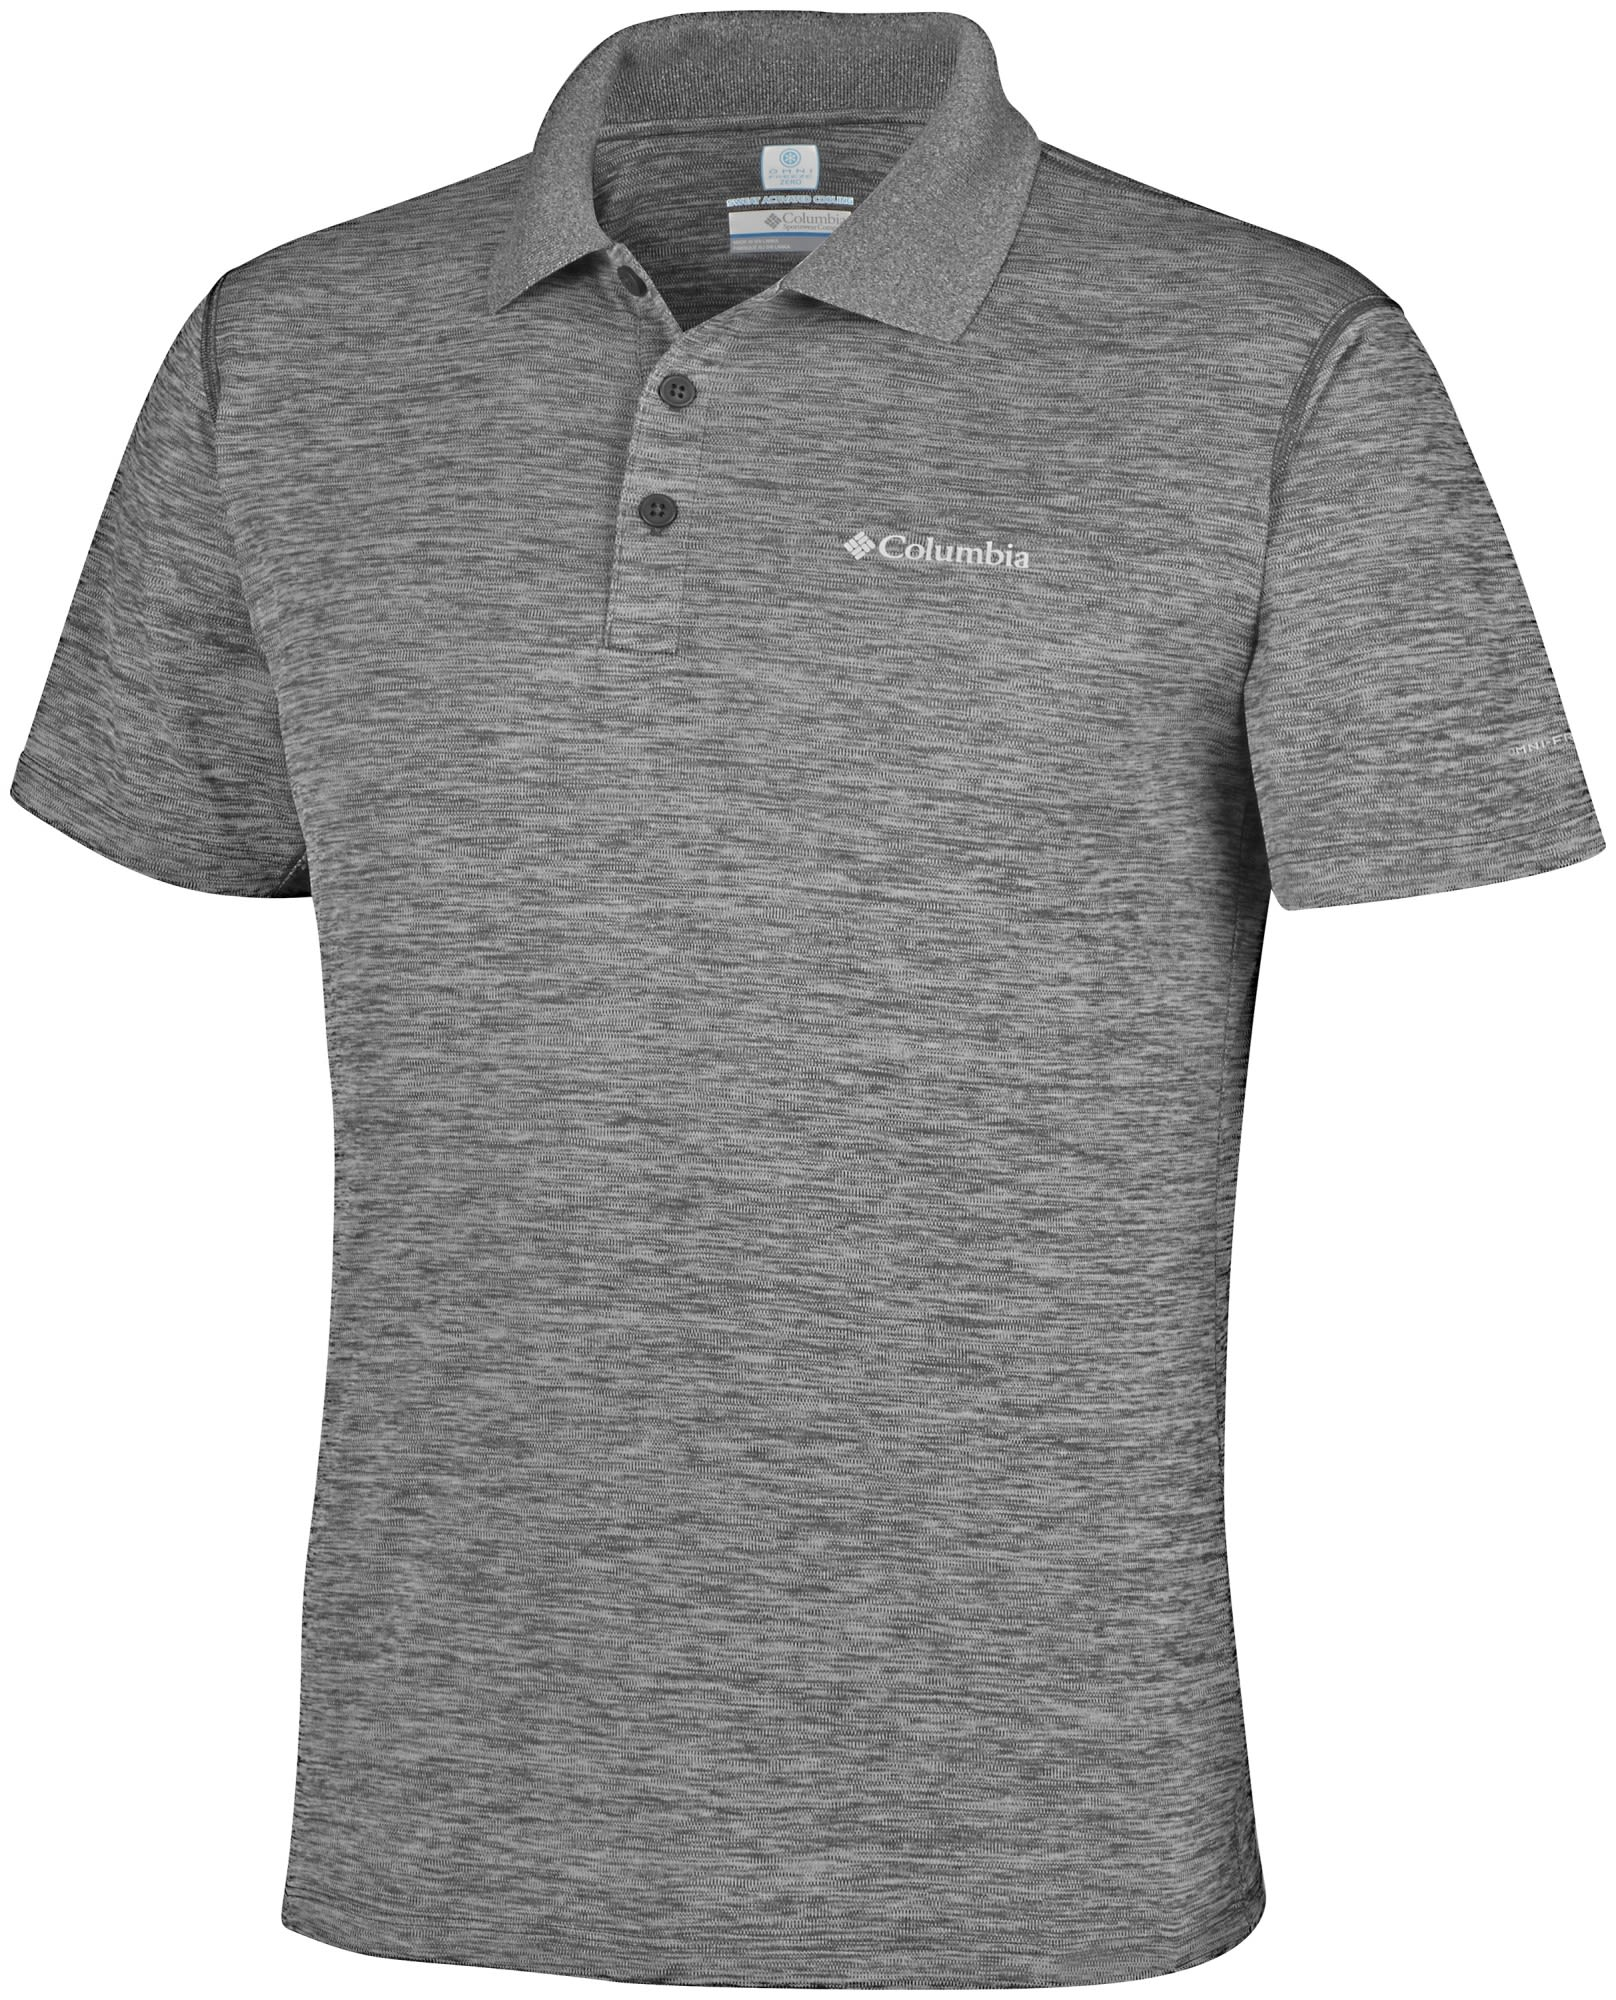 Columbia Zero Rules Polo Shirt Grau, Male Kurzarm-Polos, L